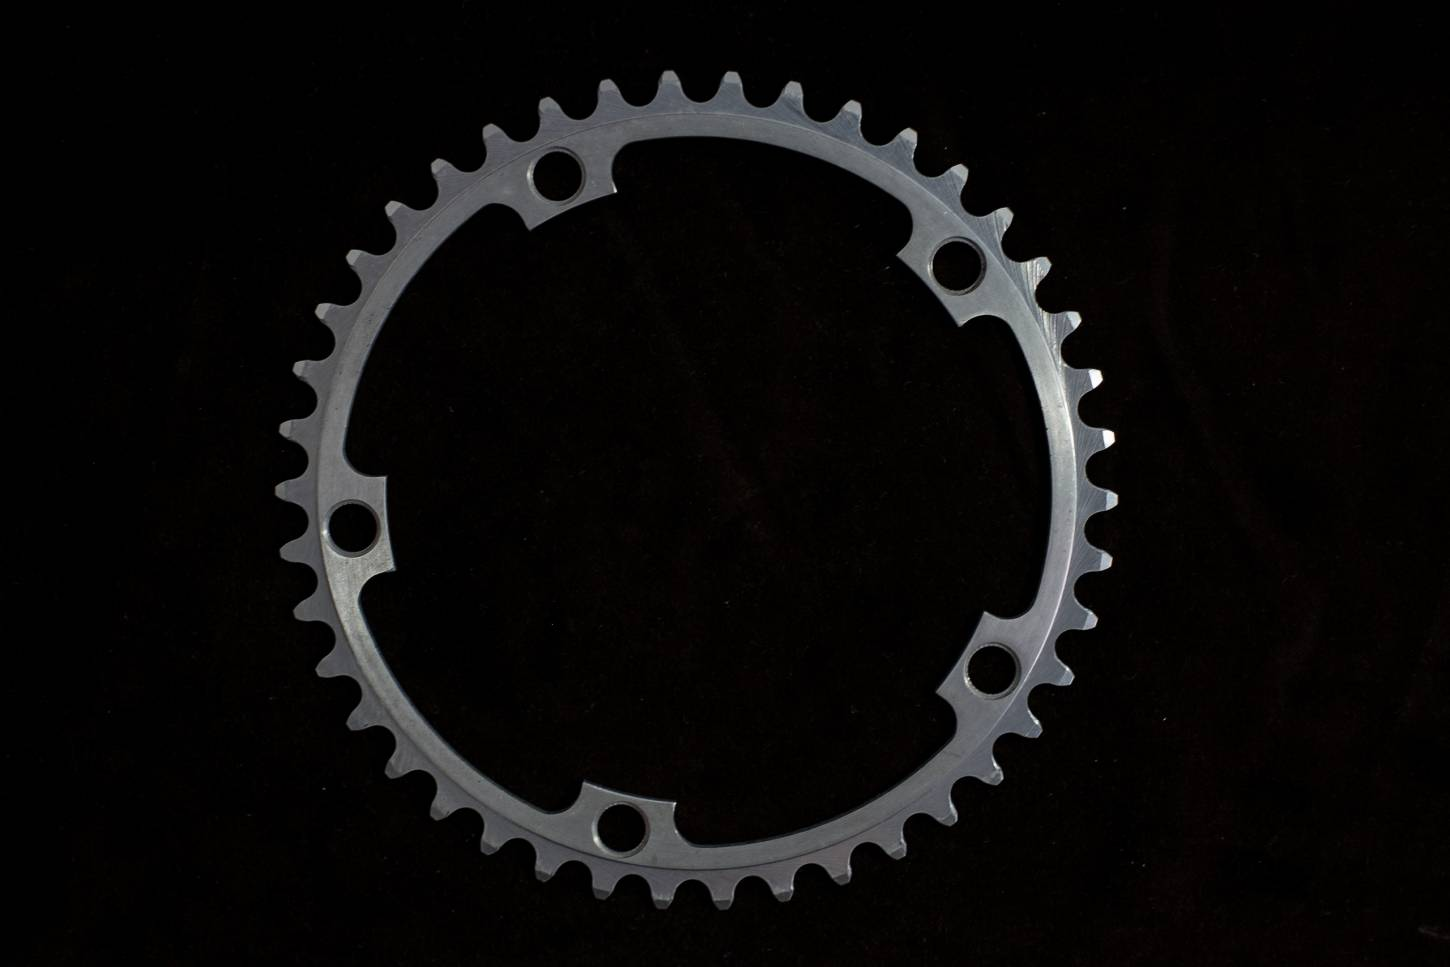 NOS Ofmega chainring / chainring 144 LK 42 teeth